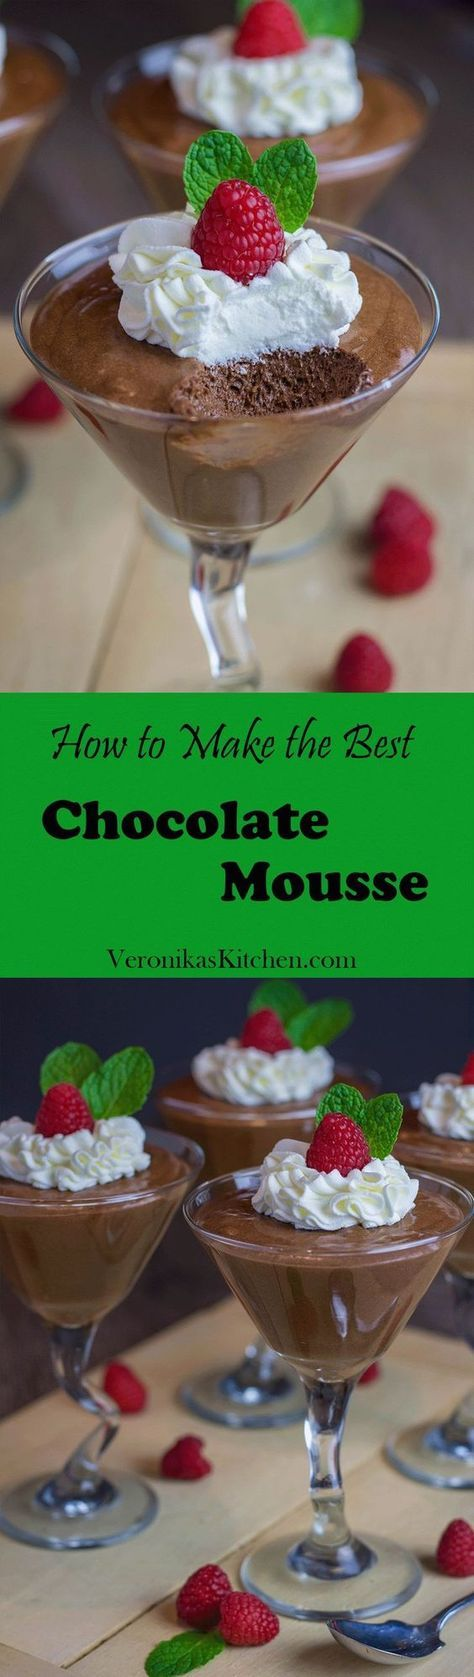 Do you want to become Julia Child for a day and make an incredible French chocolate mousse using her recipe? Now you have a chance, and trust me, this will be the best chocolate mousse you've tried in your life!